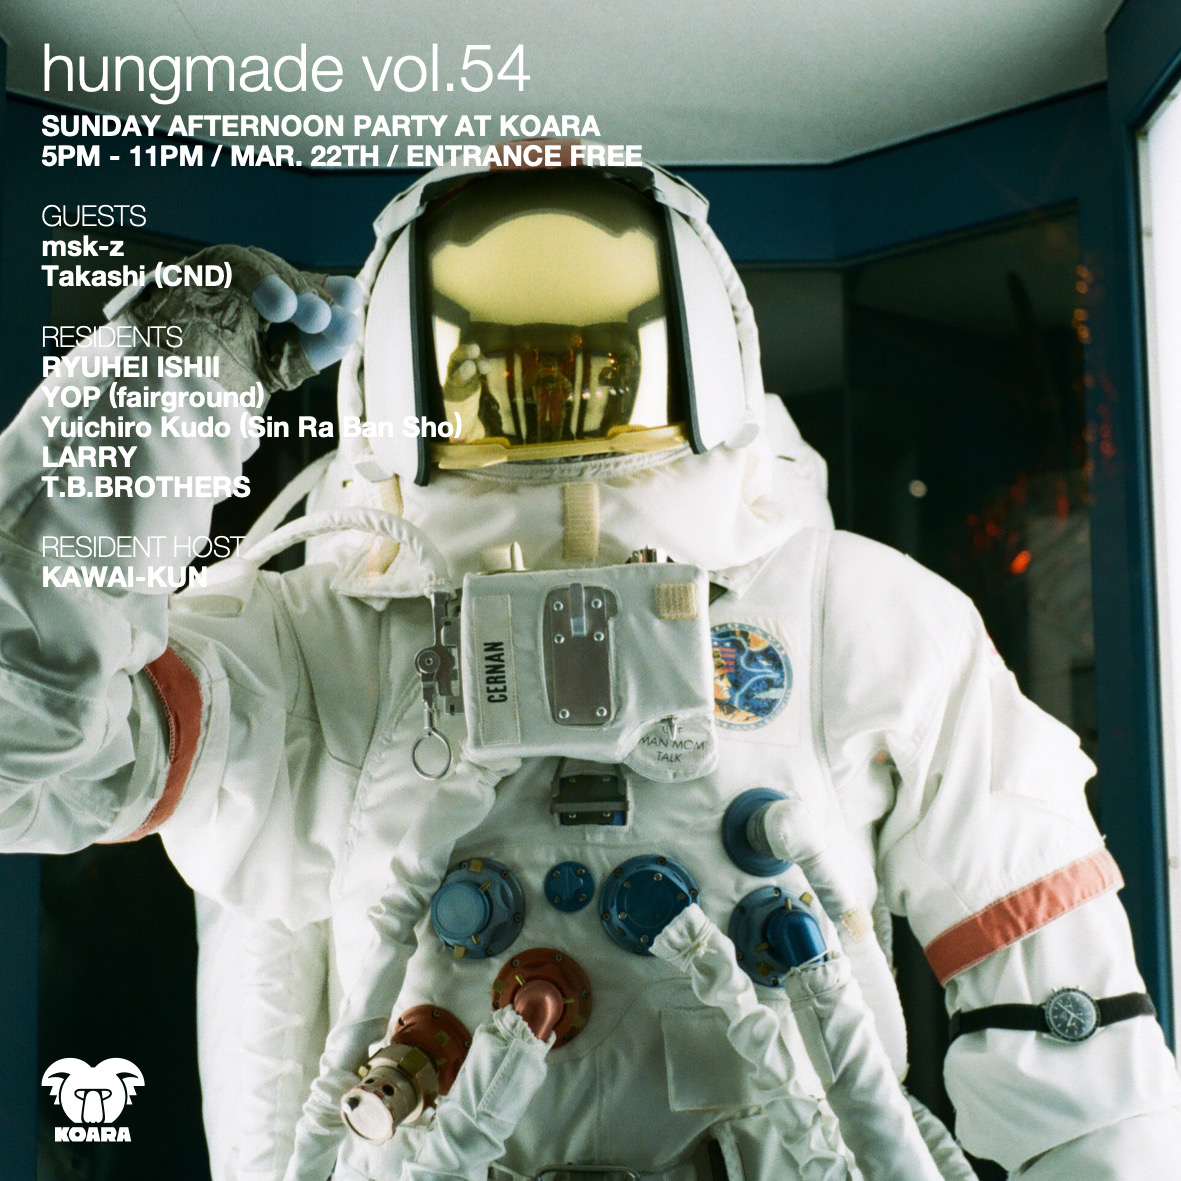 hungmade vol.54